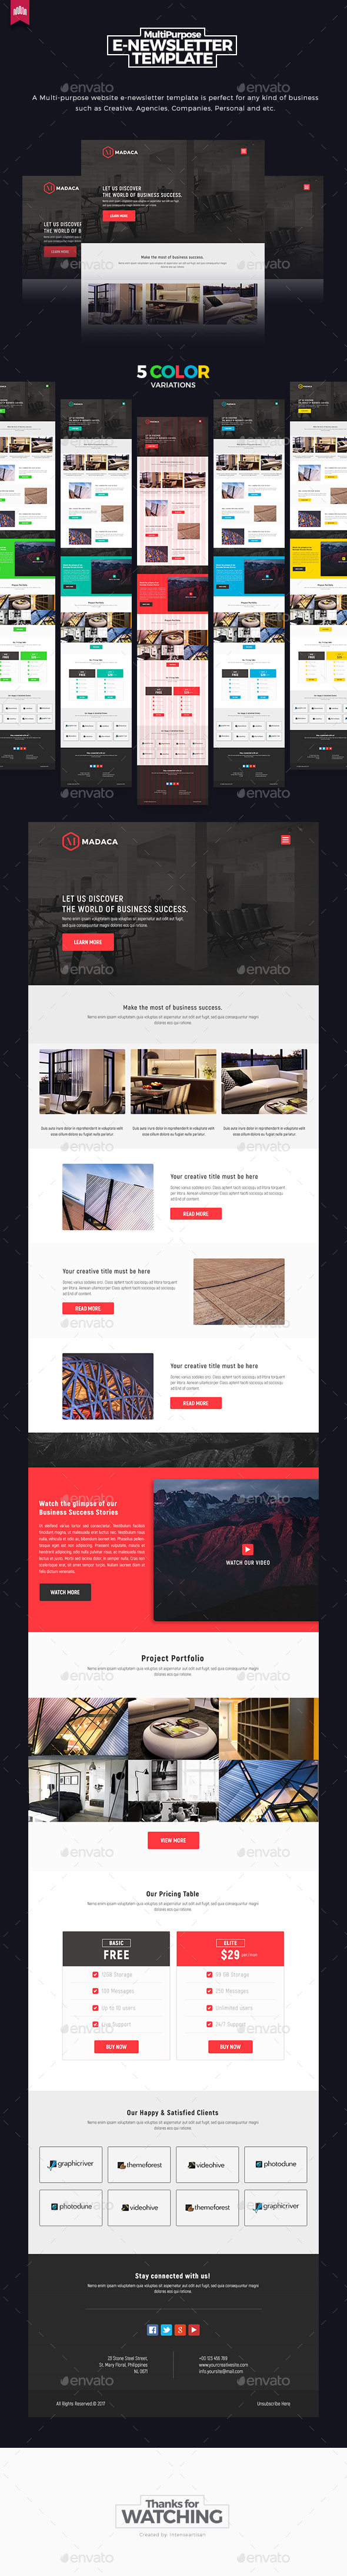 Madaca - Multipurpose E-newsletter Template - E-newsletters Web Elements